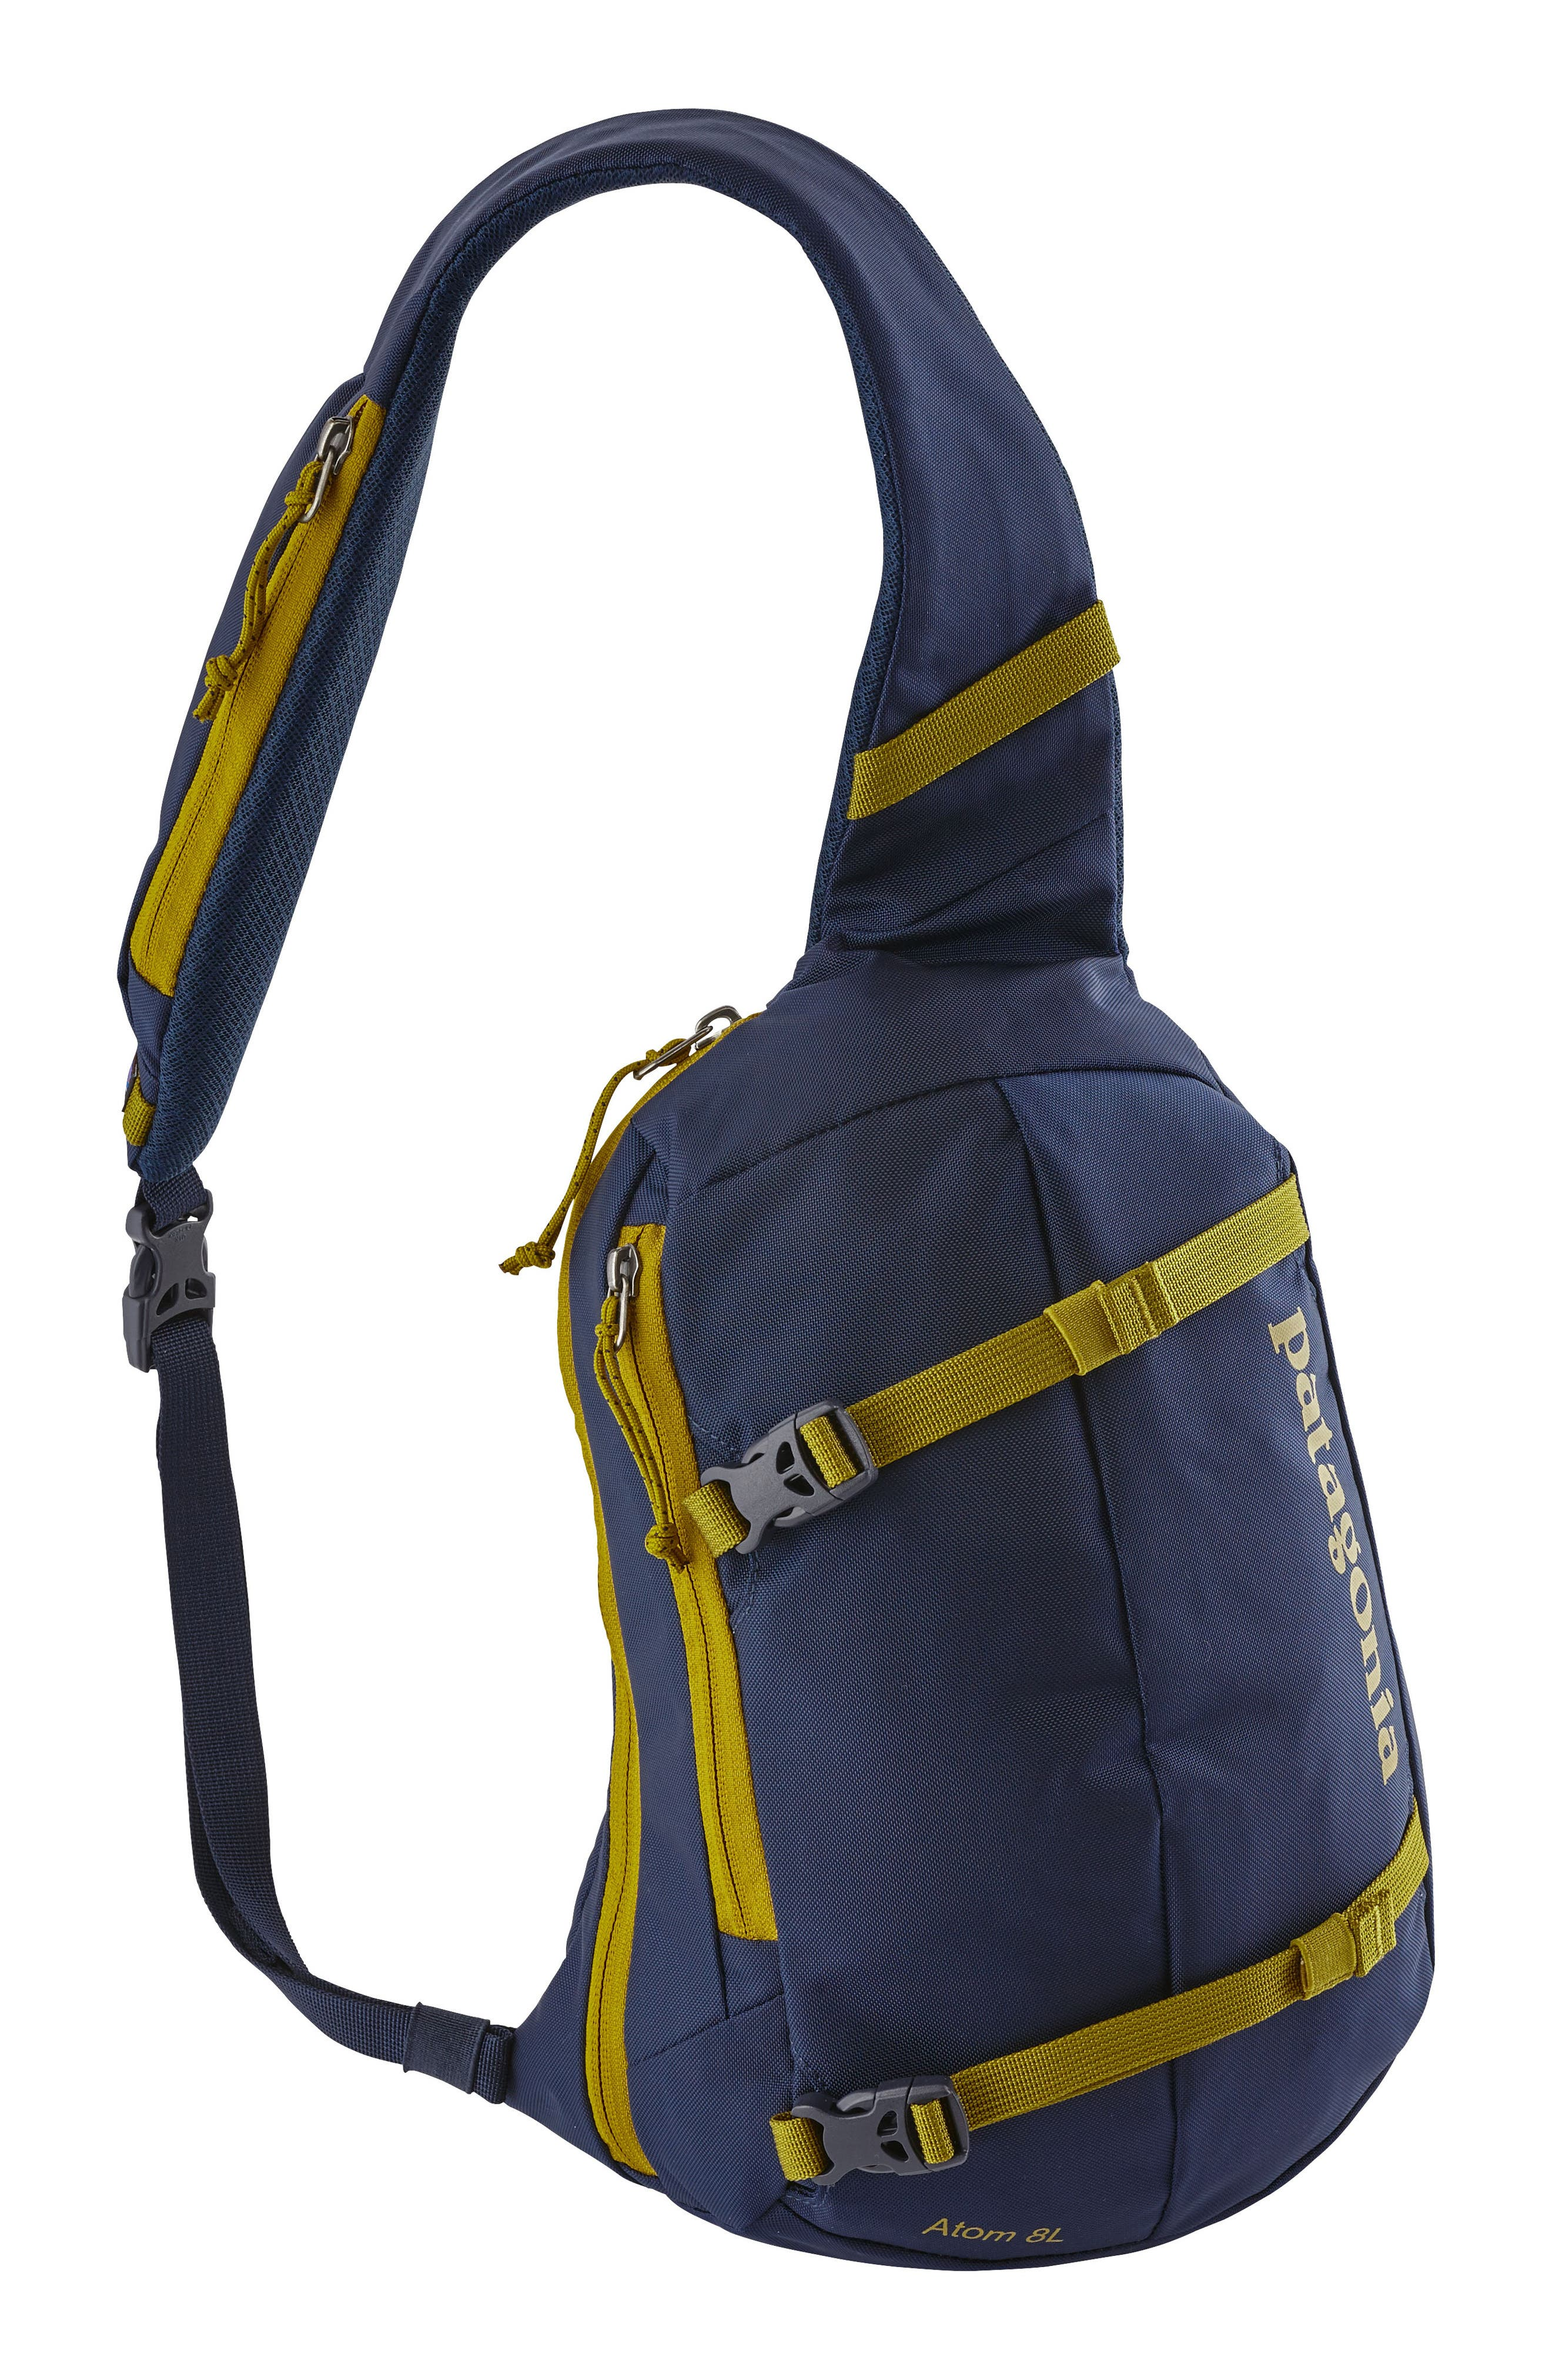 Atom 8L Sling Backpack,                             Main thumbnail 1, color,                             CNY CLASSIC NAVY